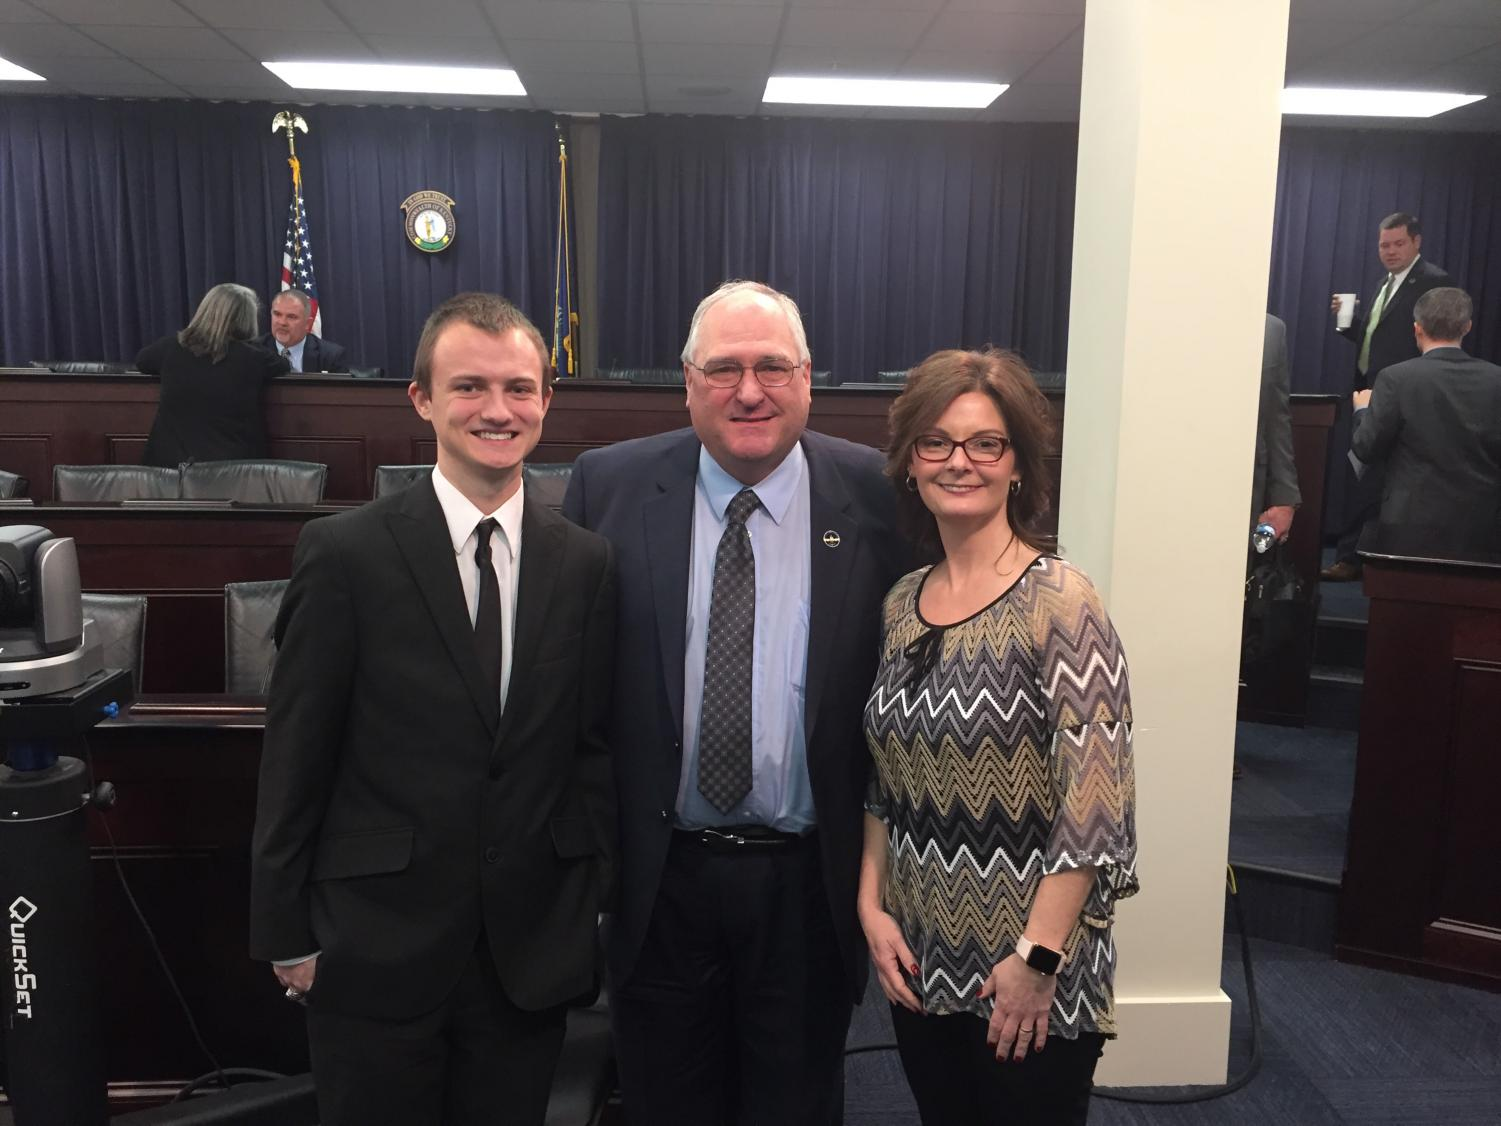 Senior Zach Combest, State Rep. Tipton and financial literacy teacher Amanda Comstock at the Capital.